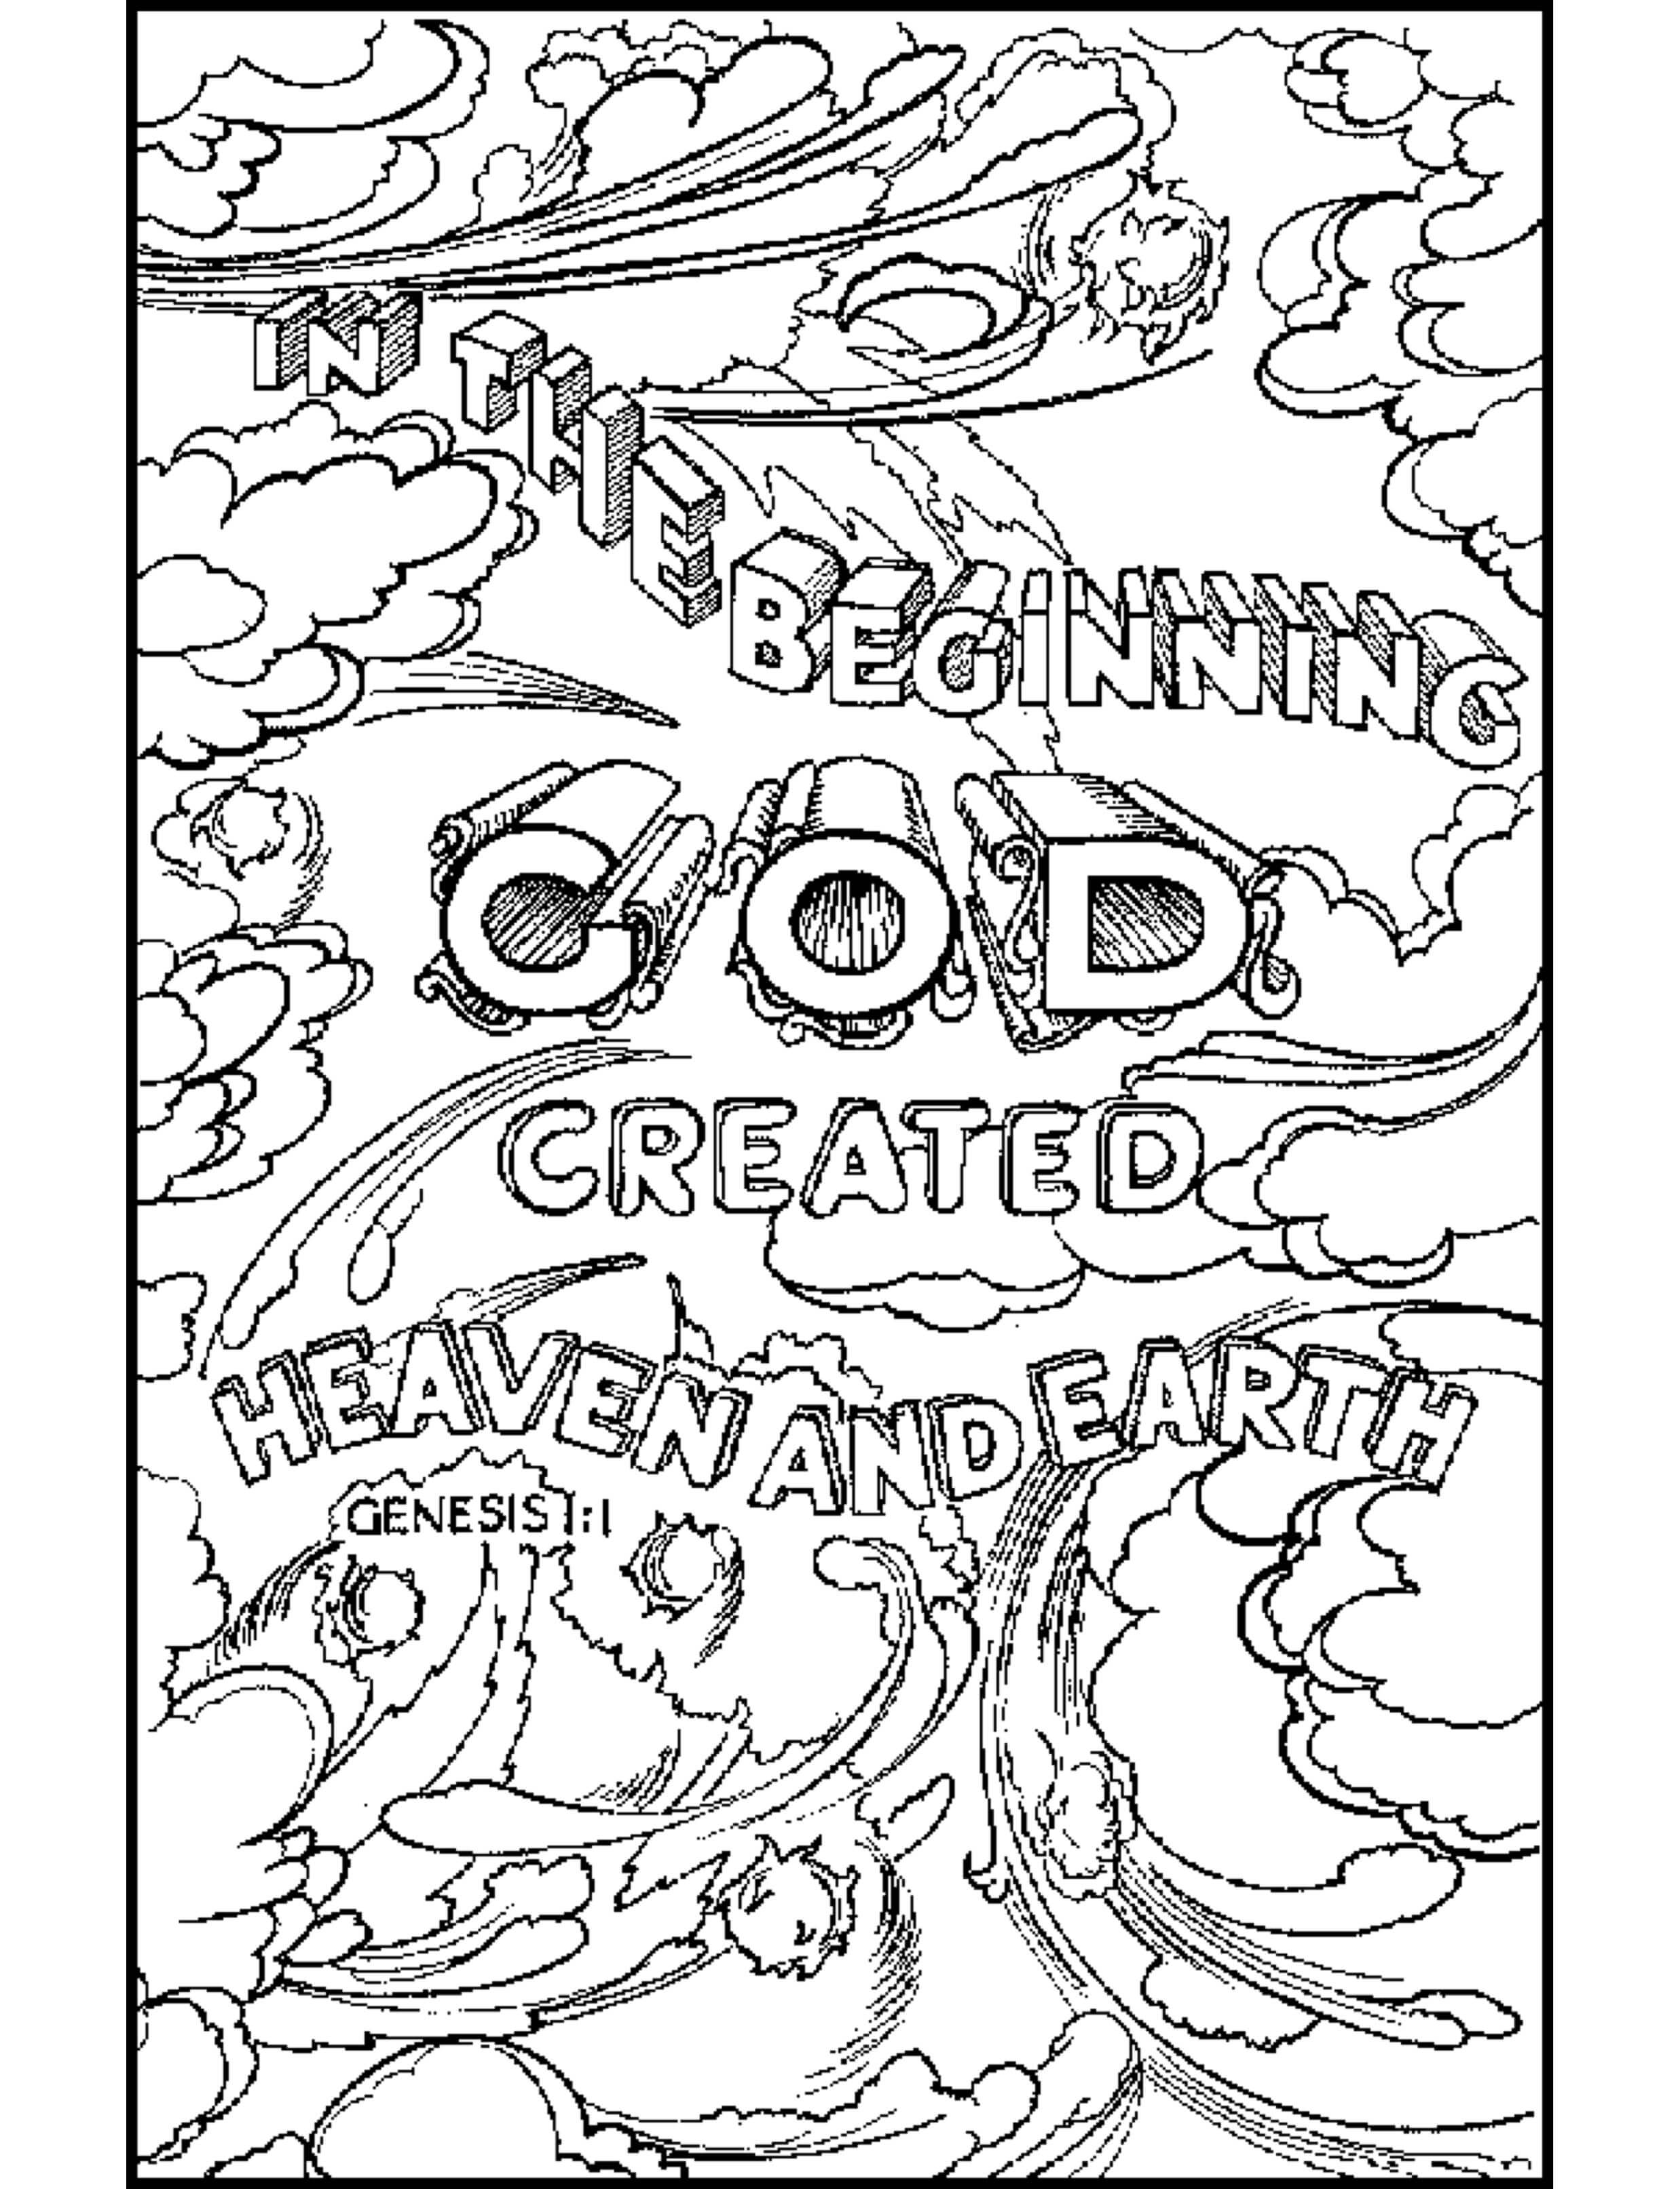 coloring pages for bible stories big book of bible story coloring pages for elementary kids coloring pages bible stories for